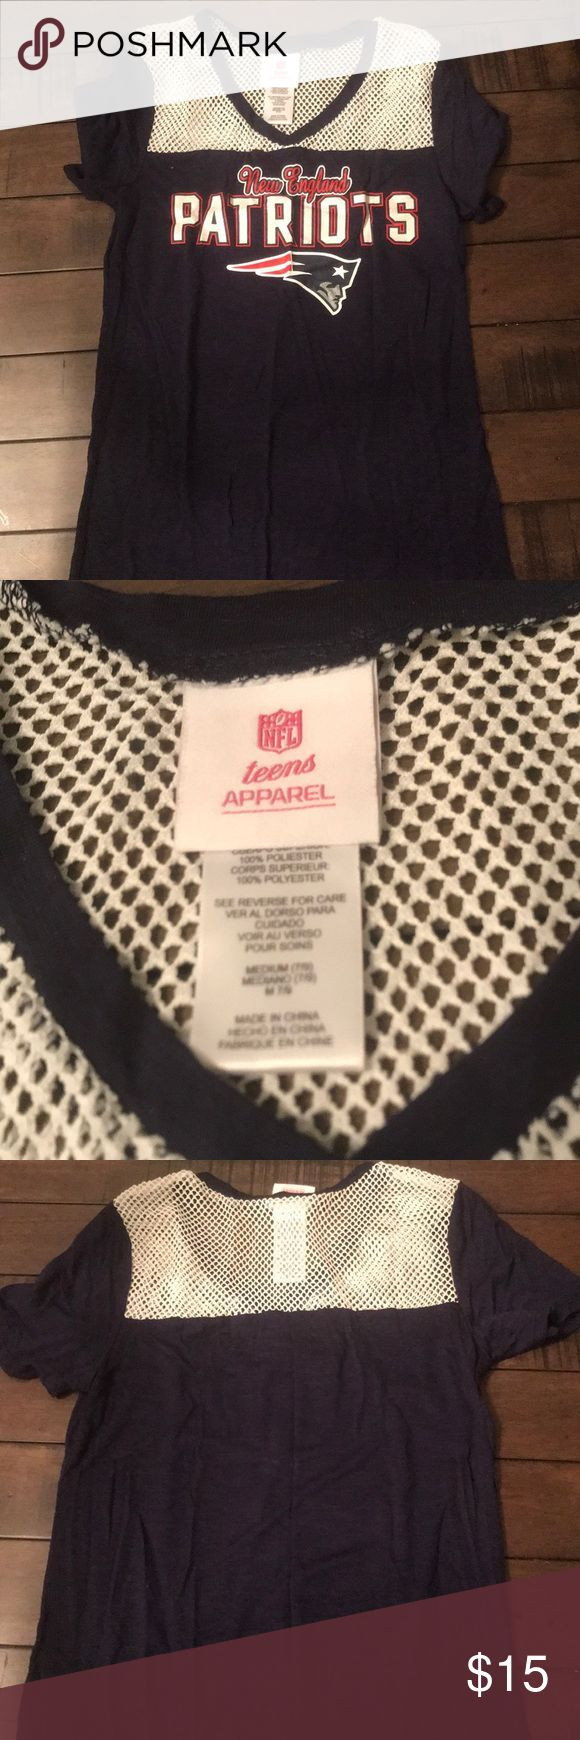 NFL Patriots shirt - worn once! Size Medium (teen) Official NFL apparel brand (teens) - I usually fit in an XS-S adult and this teens medium fit me perfectly for the casual football look I was going for! Worn once, perfect condition! The pats won that day so who knows, it could be good luck :) NFL Apparel Tops Tees - Short Sleeve